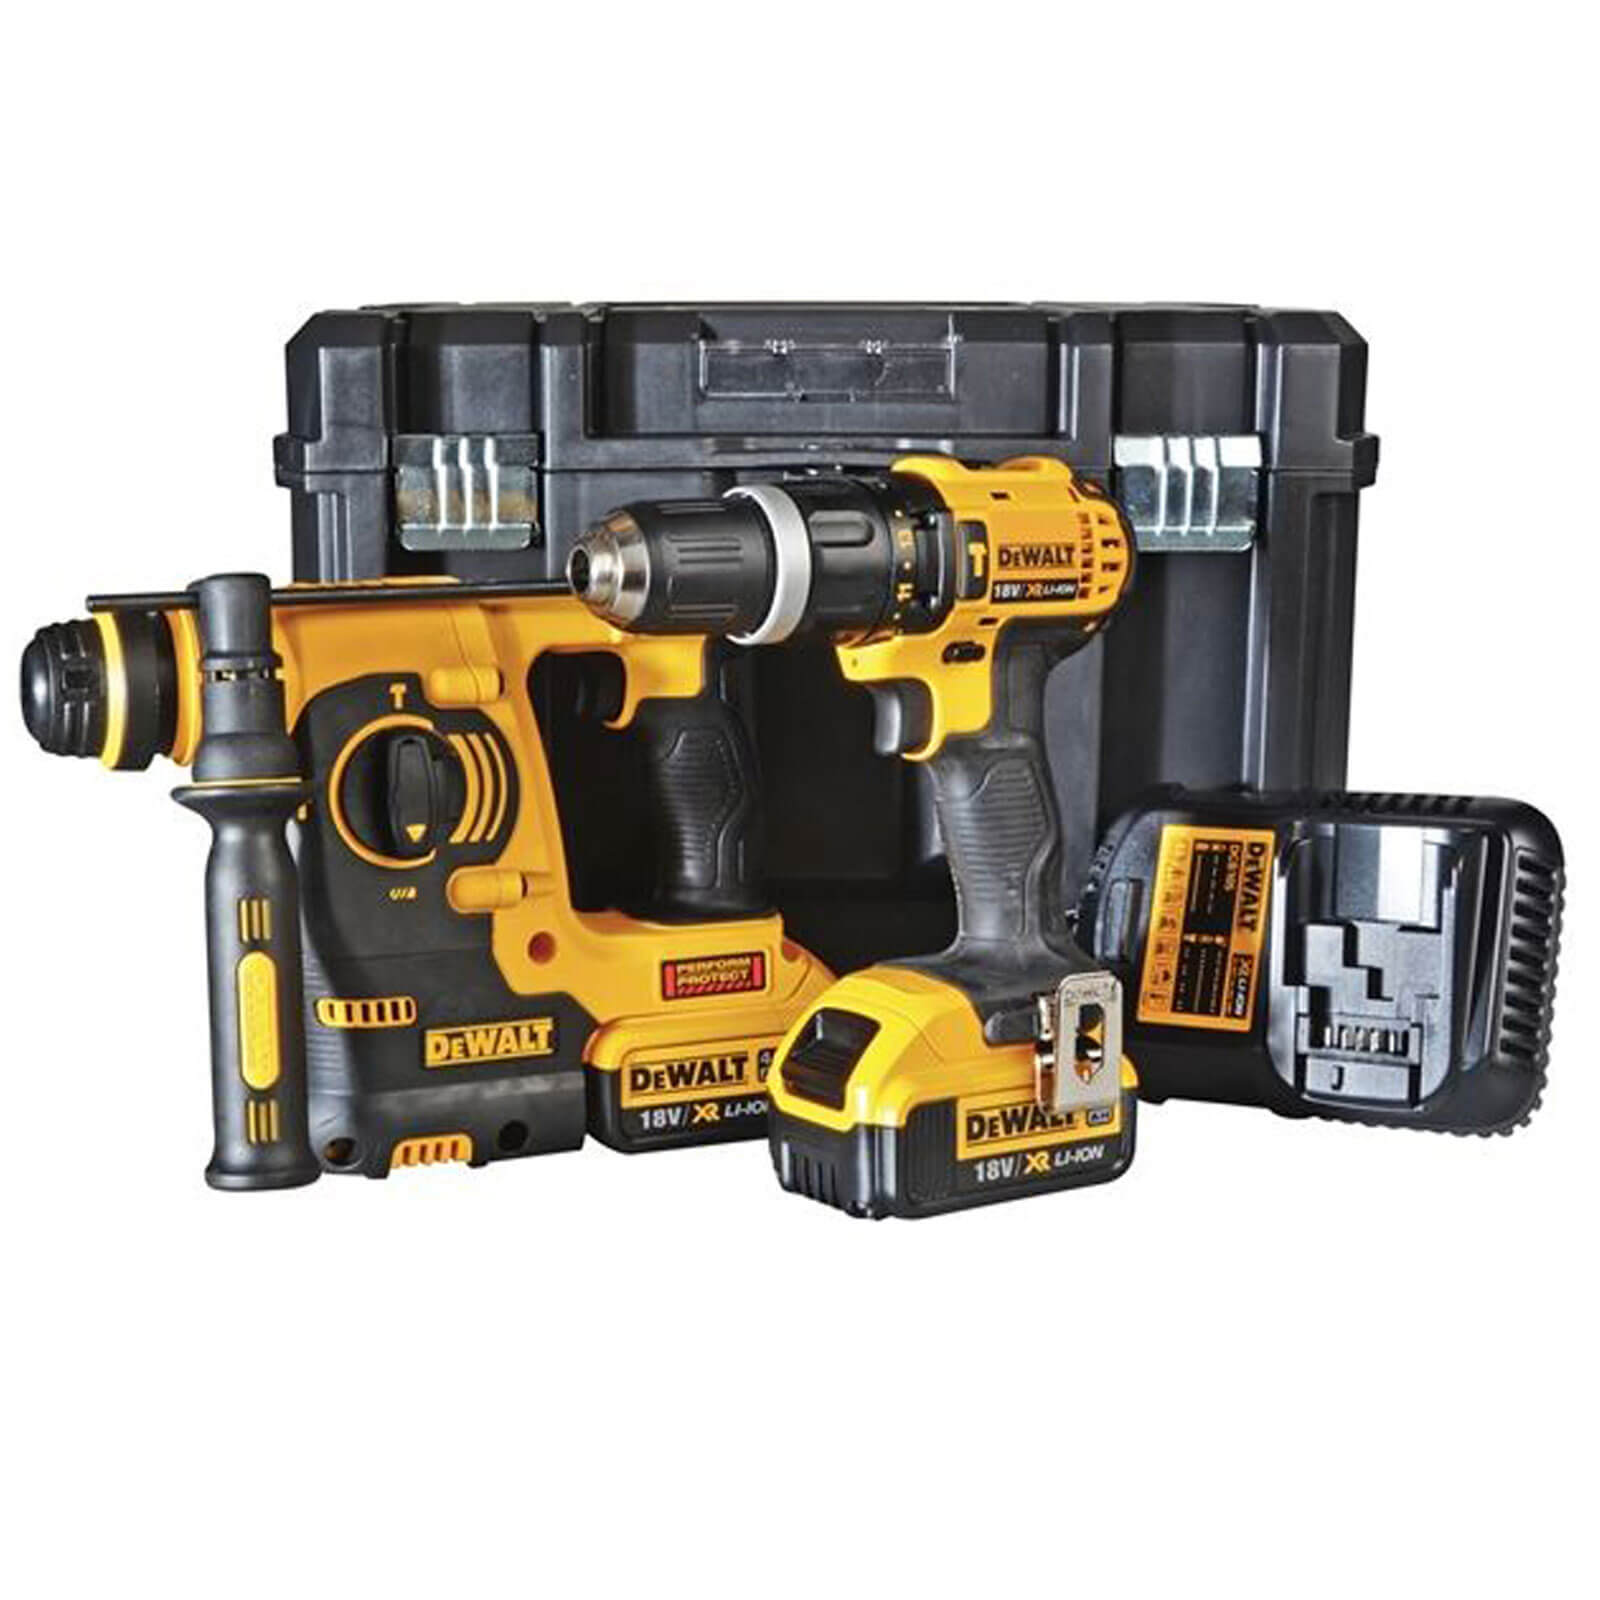 Image of Dewalt DCK206M2T 18v Cordless XR Combi Drill & SDS Hammer Drill with 2 Lithium Ion Batteries 4ah